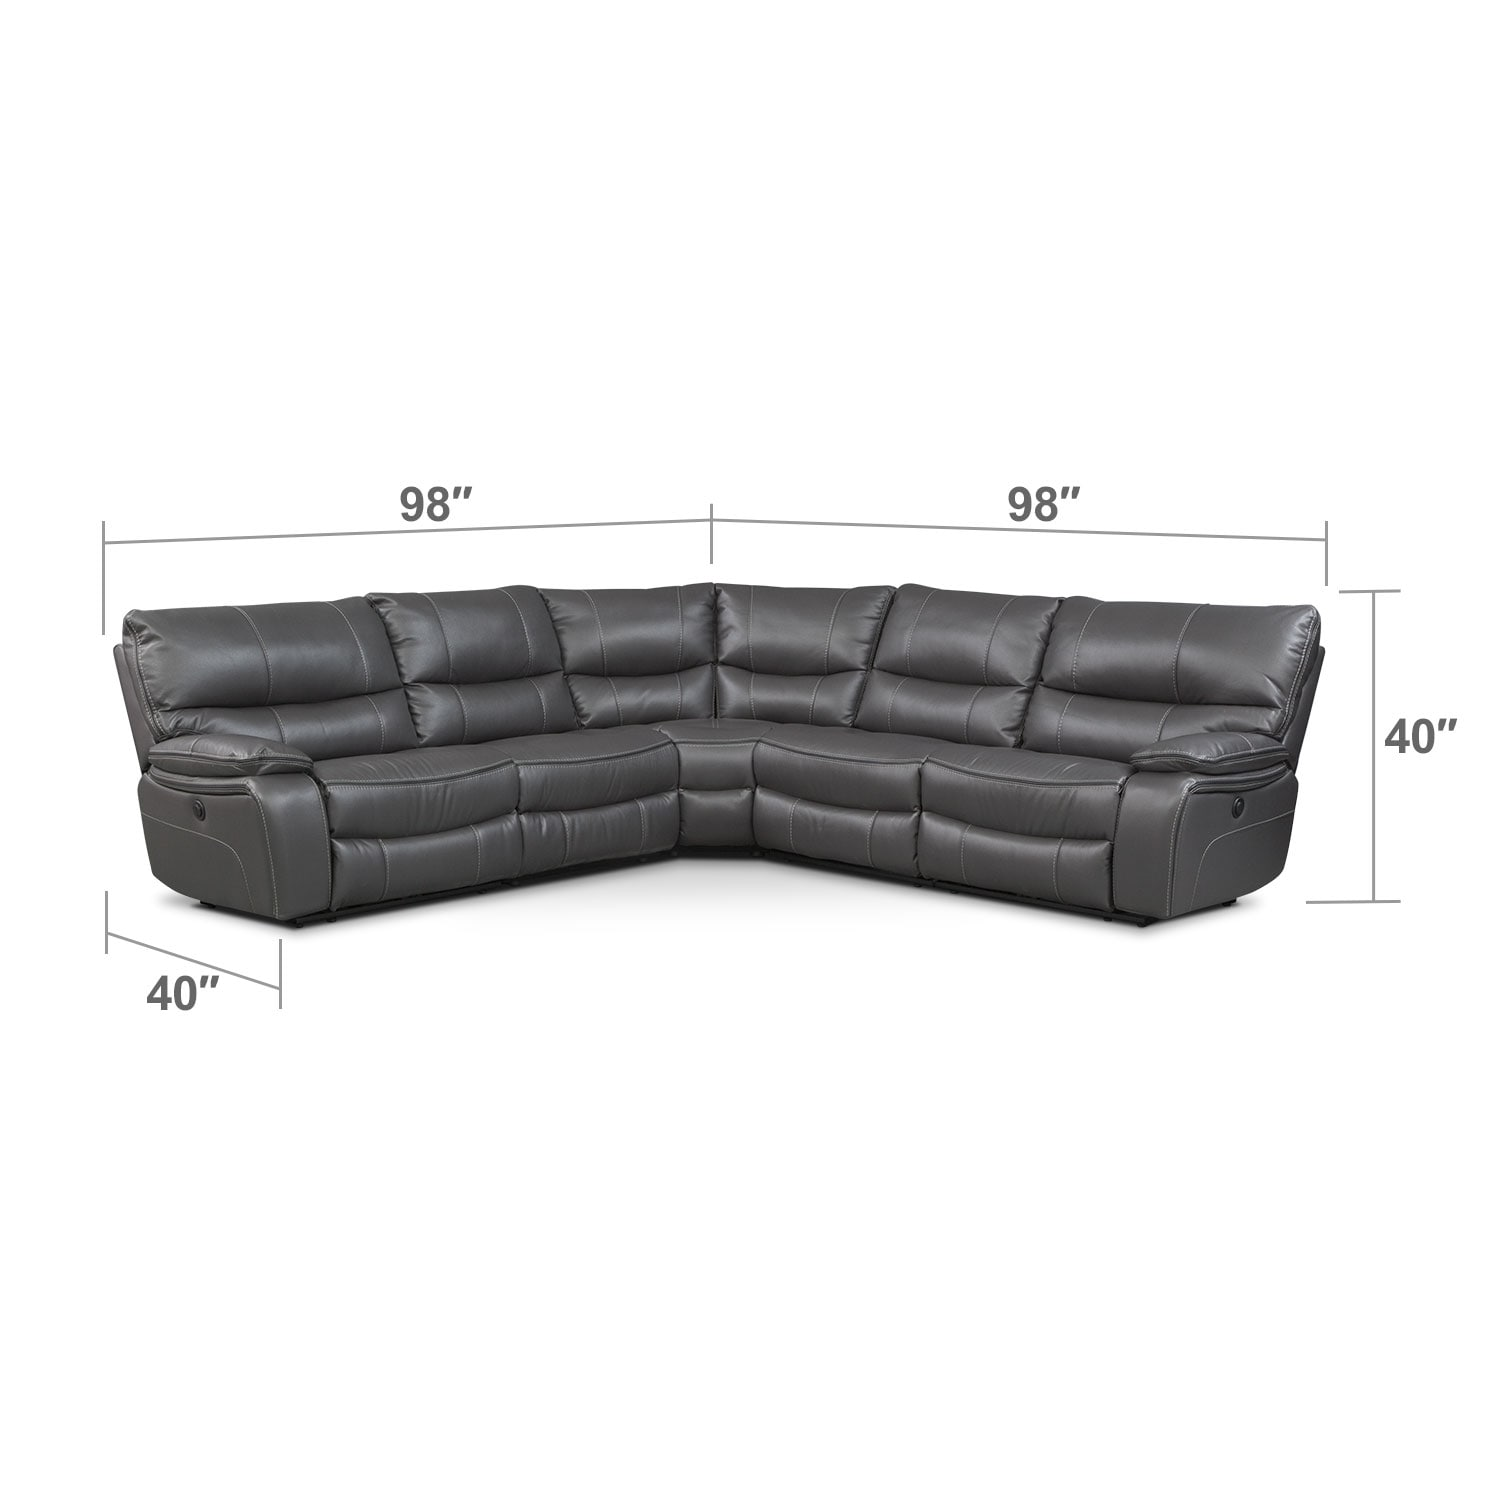 Living Room Furniture - Orlando 5-Piece Power Reclining Sectional - Gray